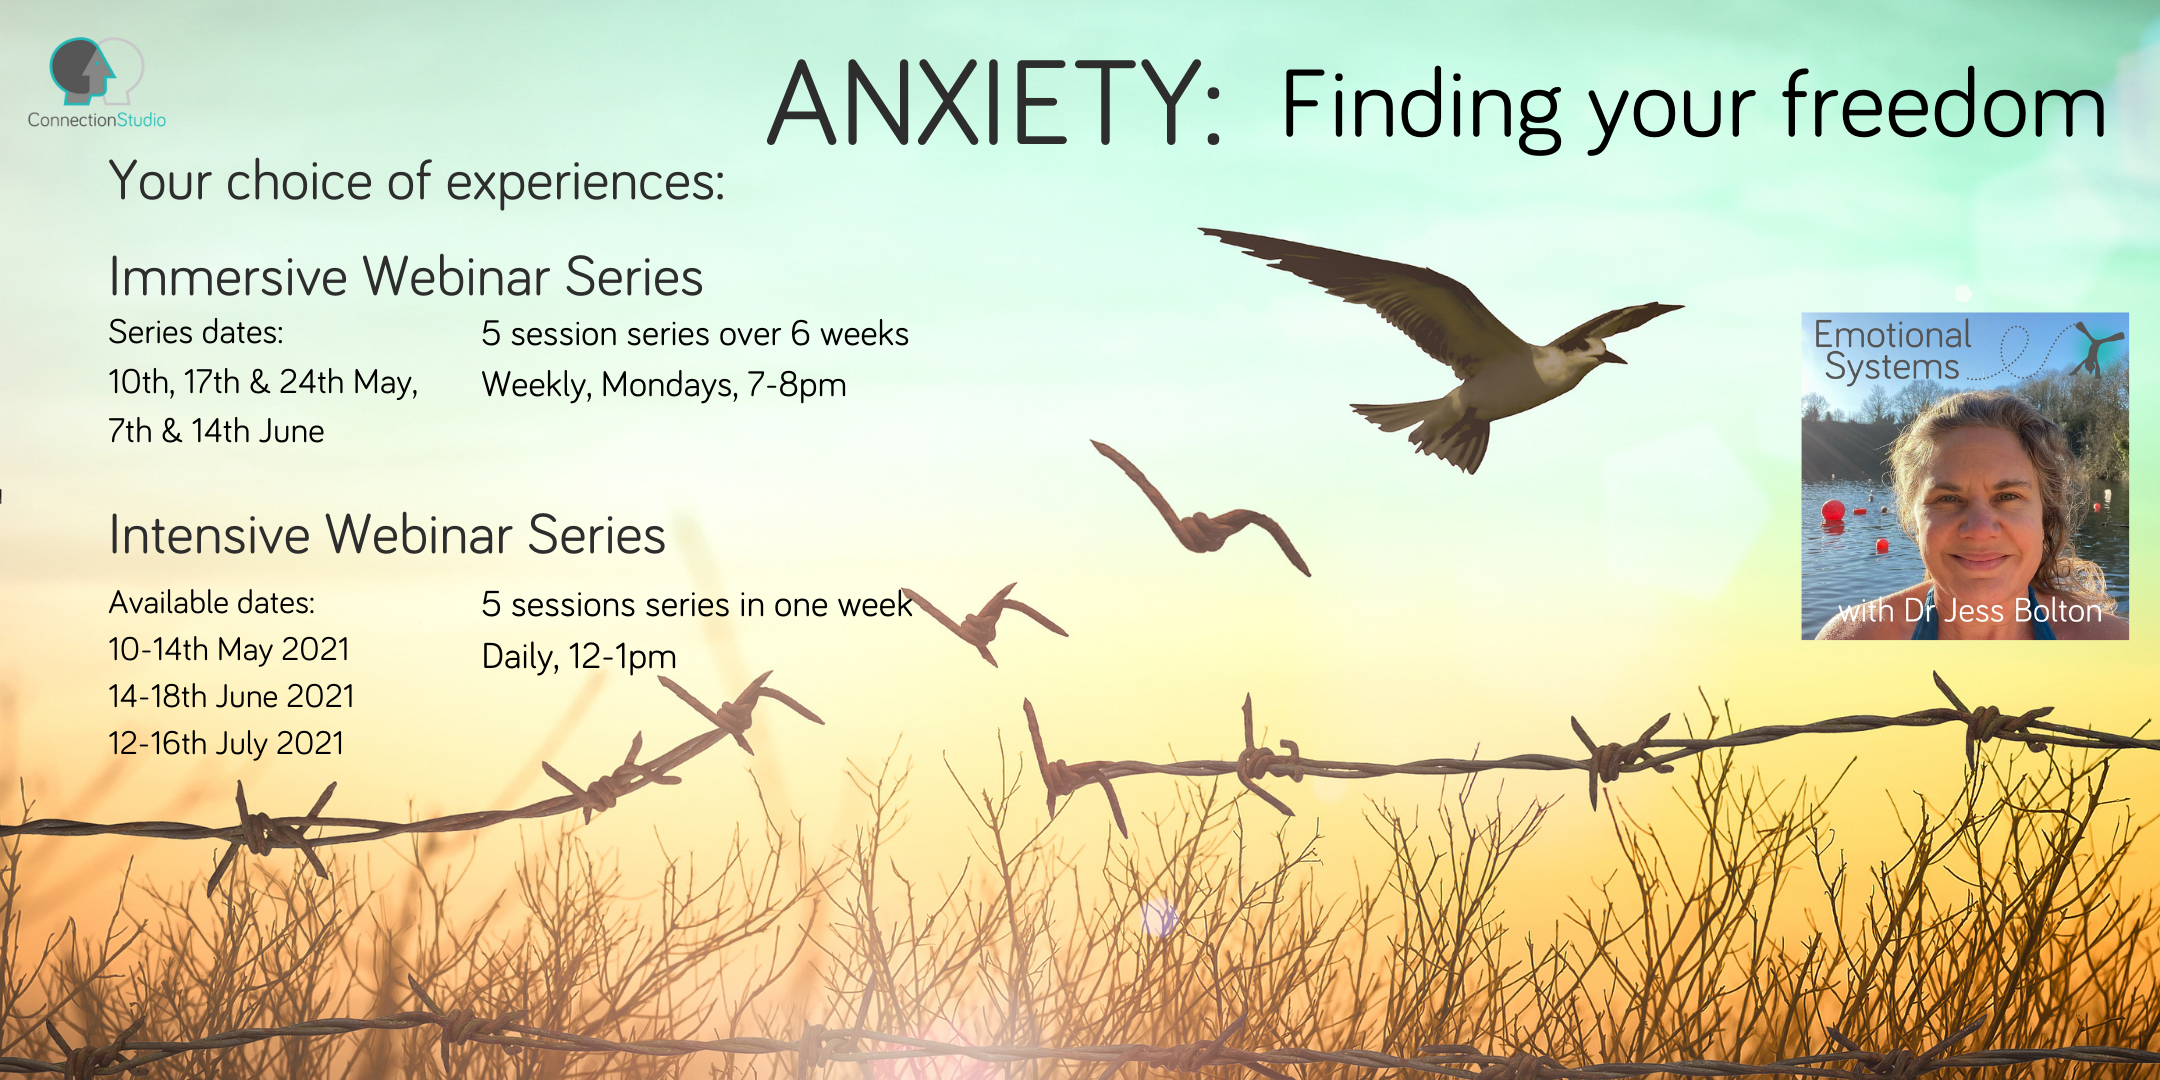 Anxiety Find your Freedom webinar dates and times